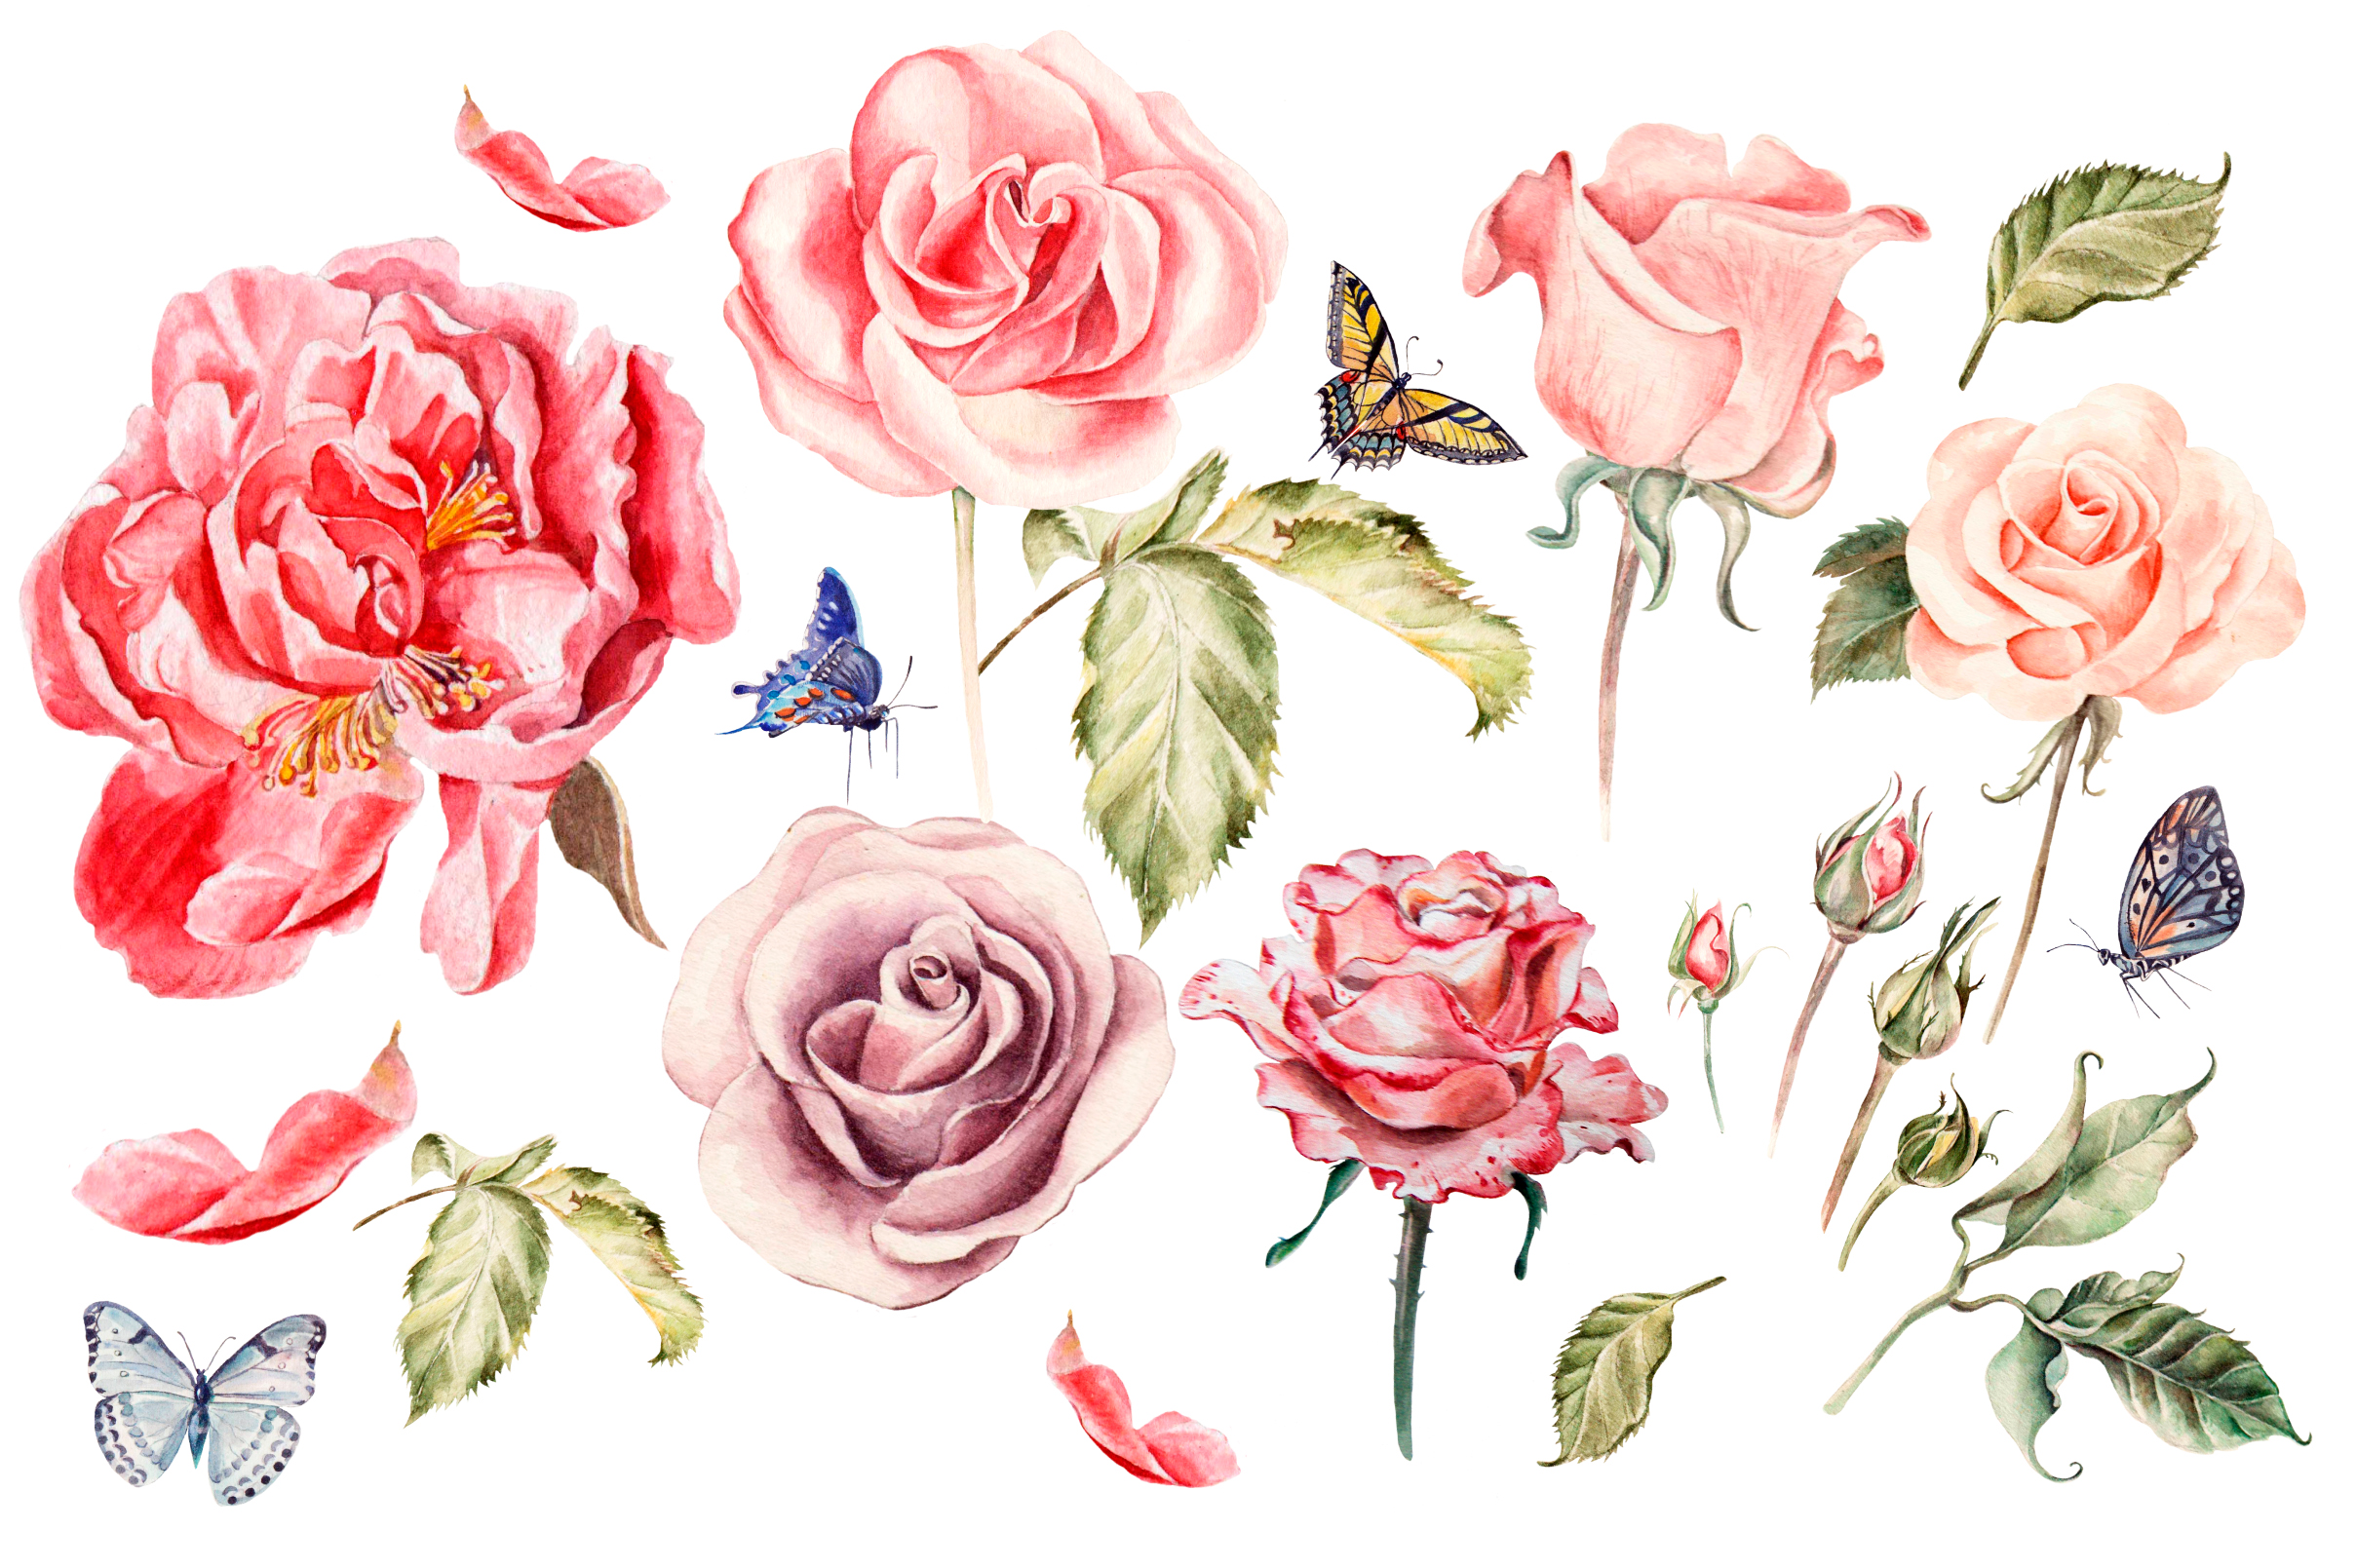 Hand drawn watercolor roses example image 2